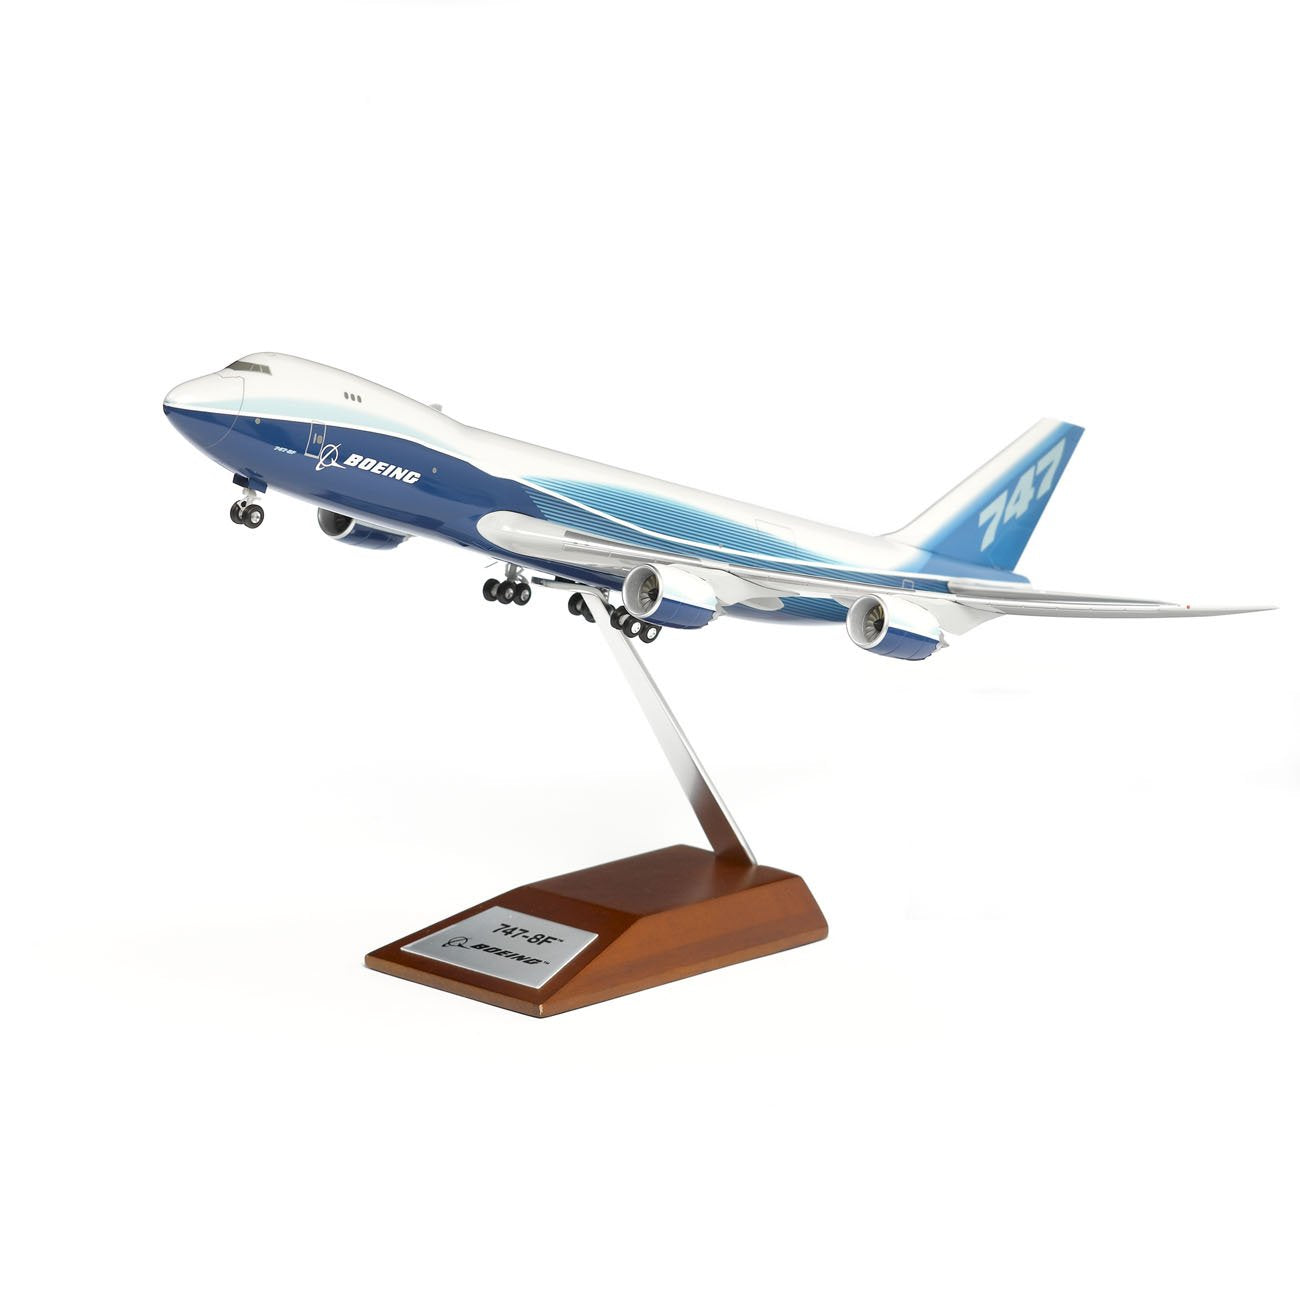 Boeing 747-8F Freighter 1:200 Plastic Model